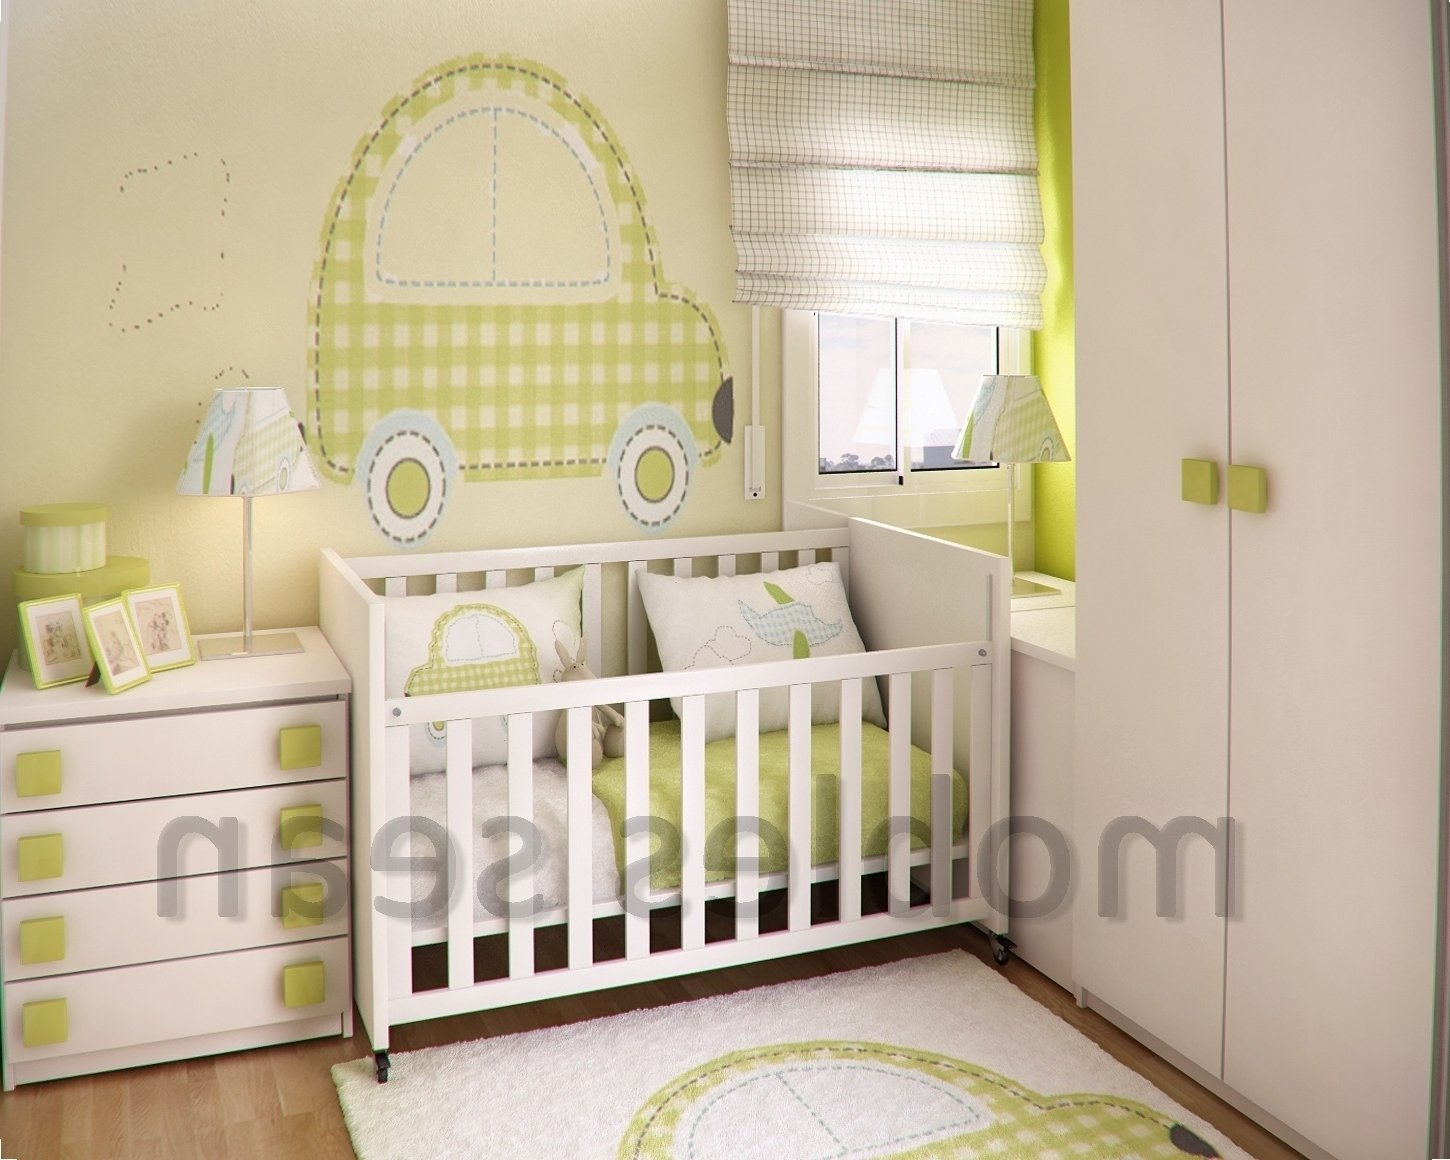 10 Cute Nursery Ideas For Small Spaces 80 types aesthetic nursery ideas for small spaces zone area within 2020